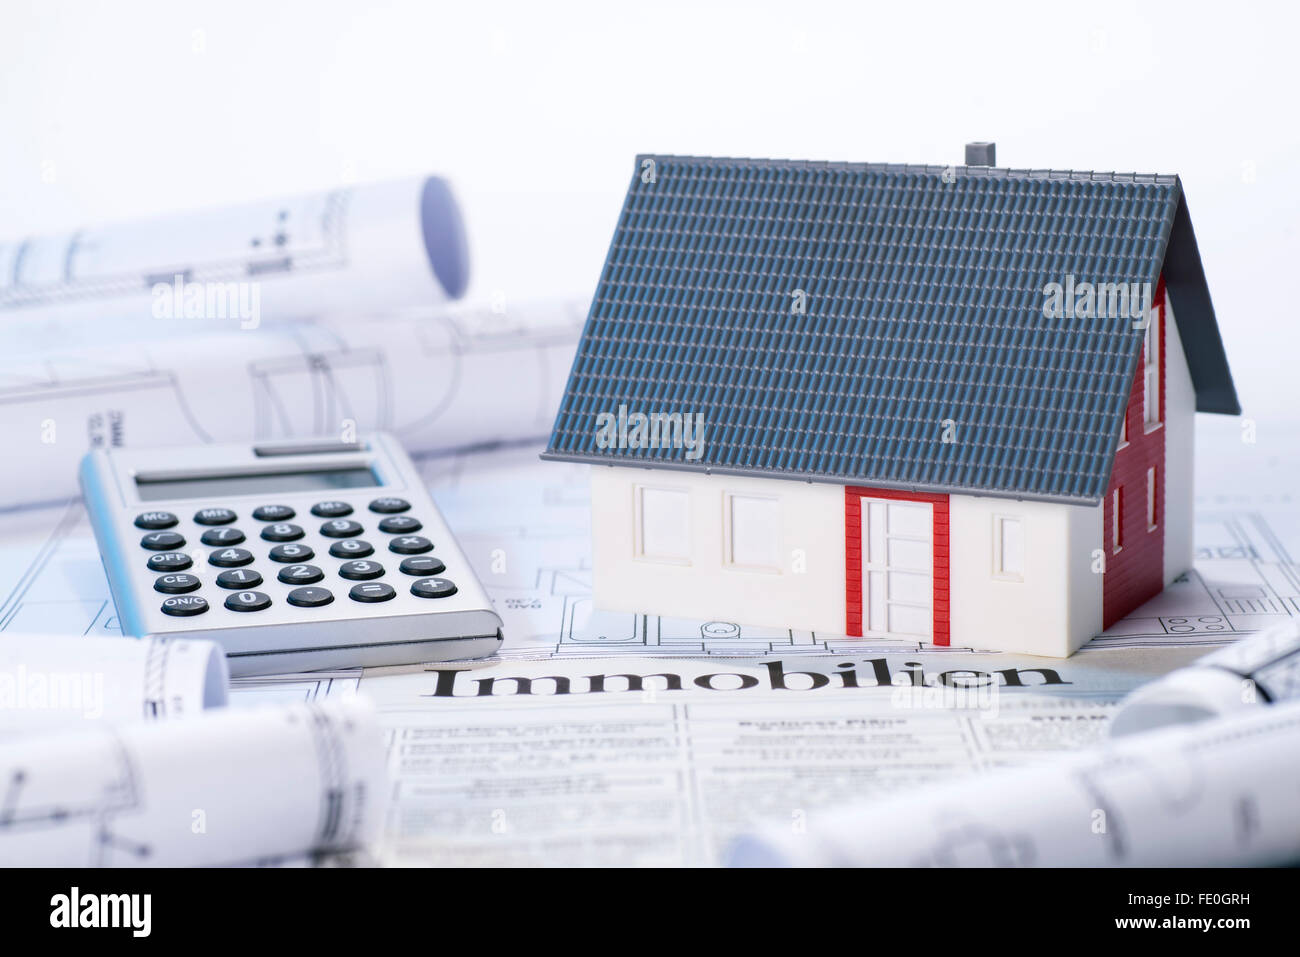 Property ad stock photos property ad stock images alamy house with blueprints real estate ads and calculator stock image malvernweather Gallery